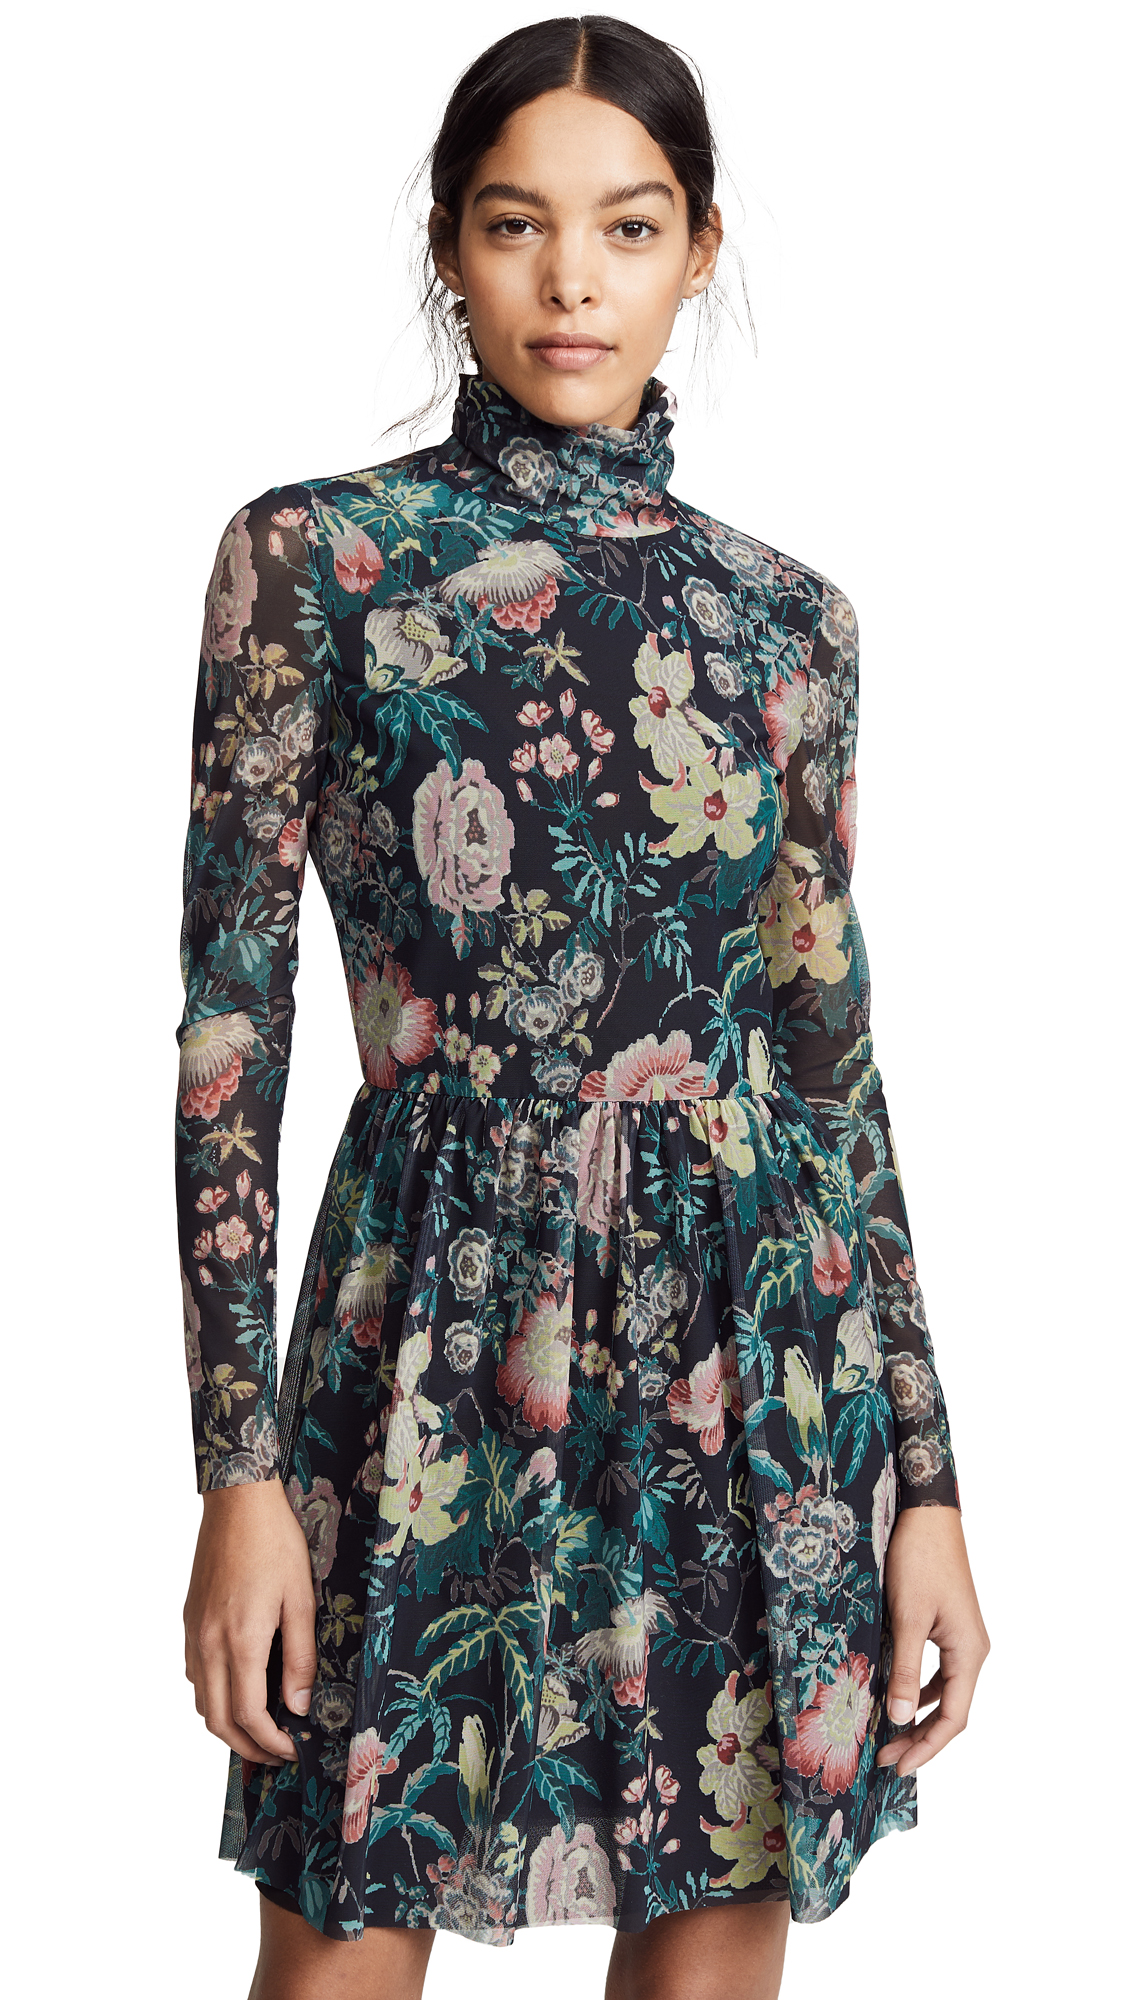 La Vie Rebecca Taylor Long Sleeve Faded Garden Dress